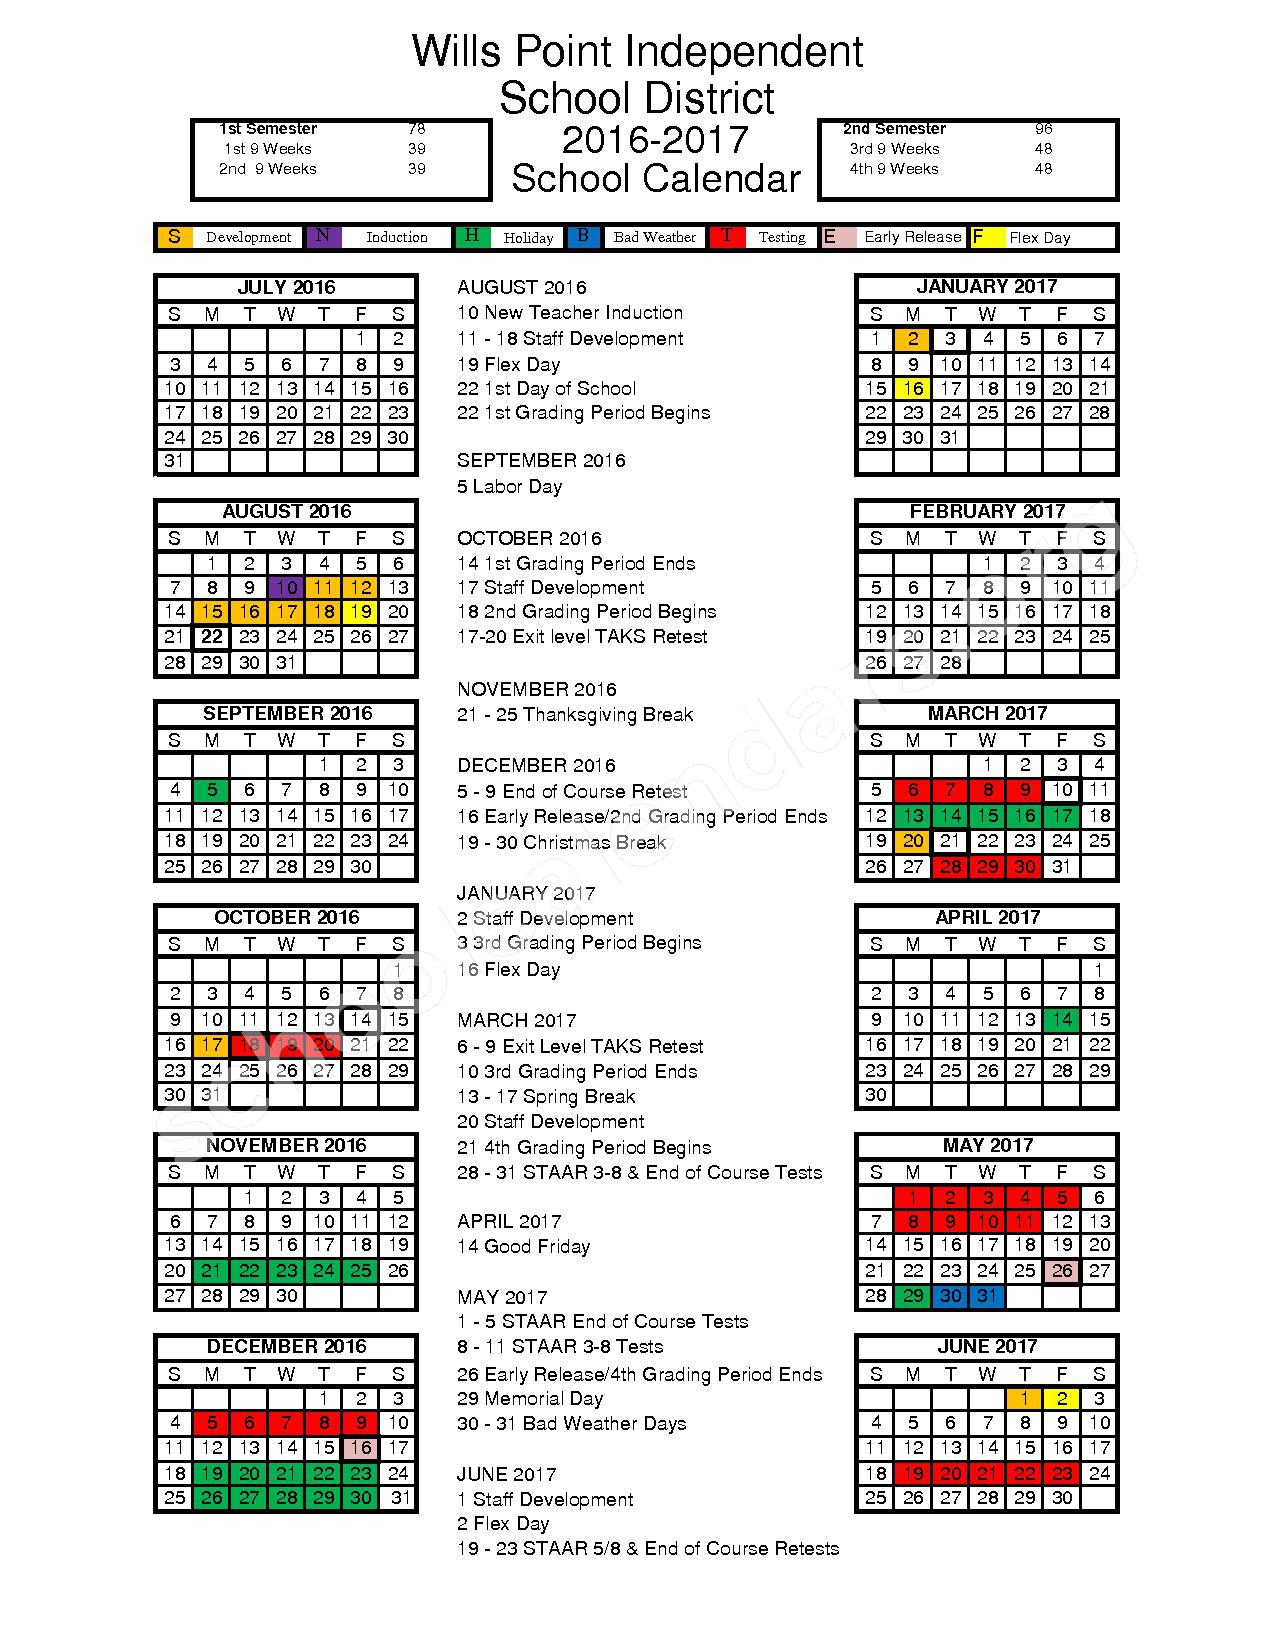 Wills Point Independent School District Calendars Texas